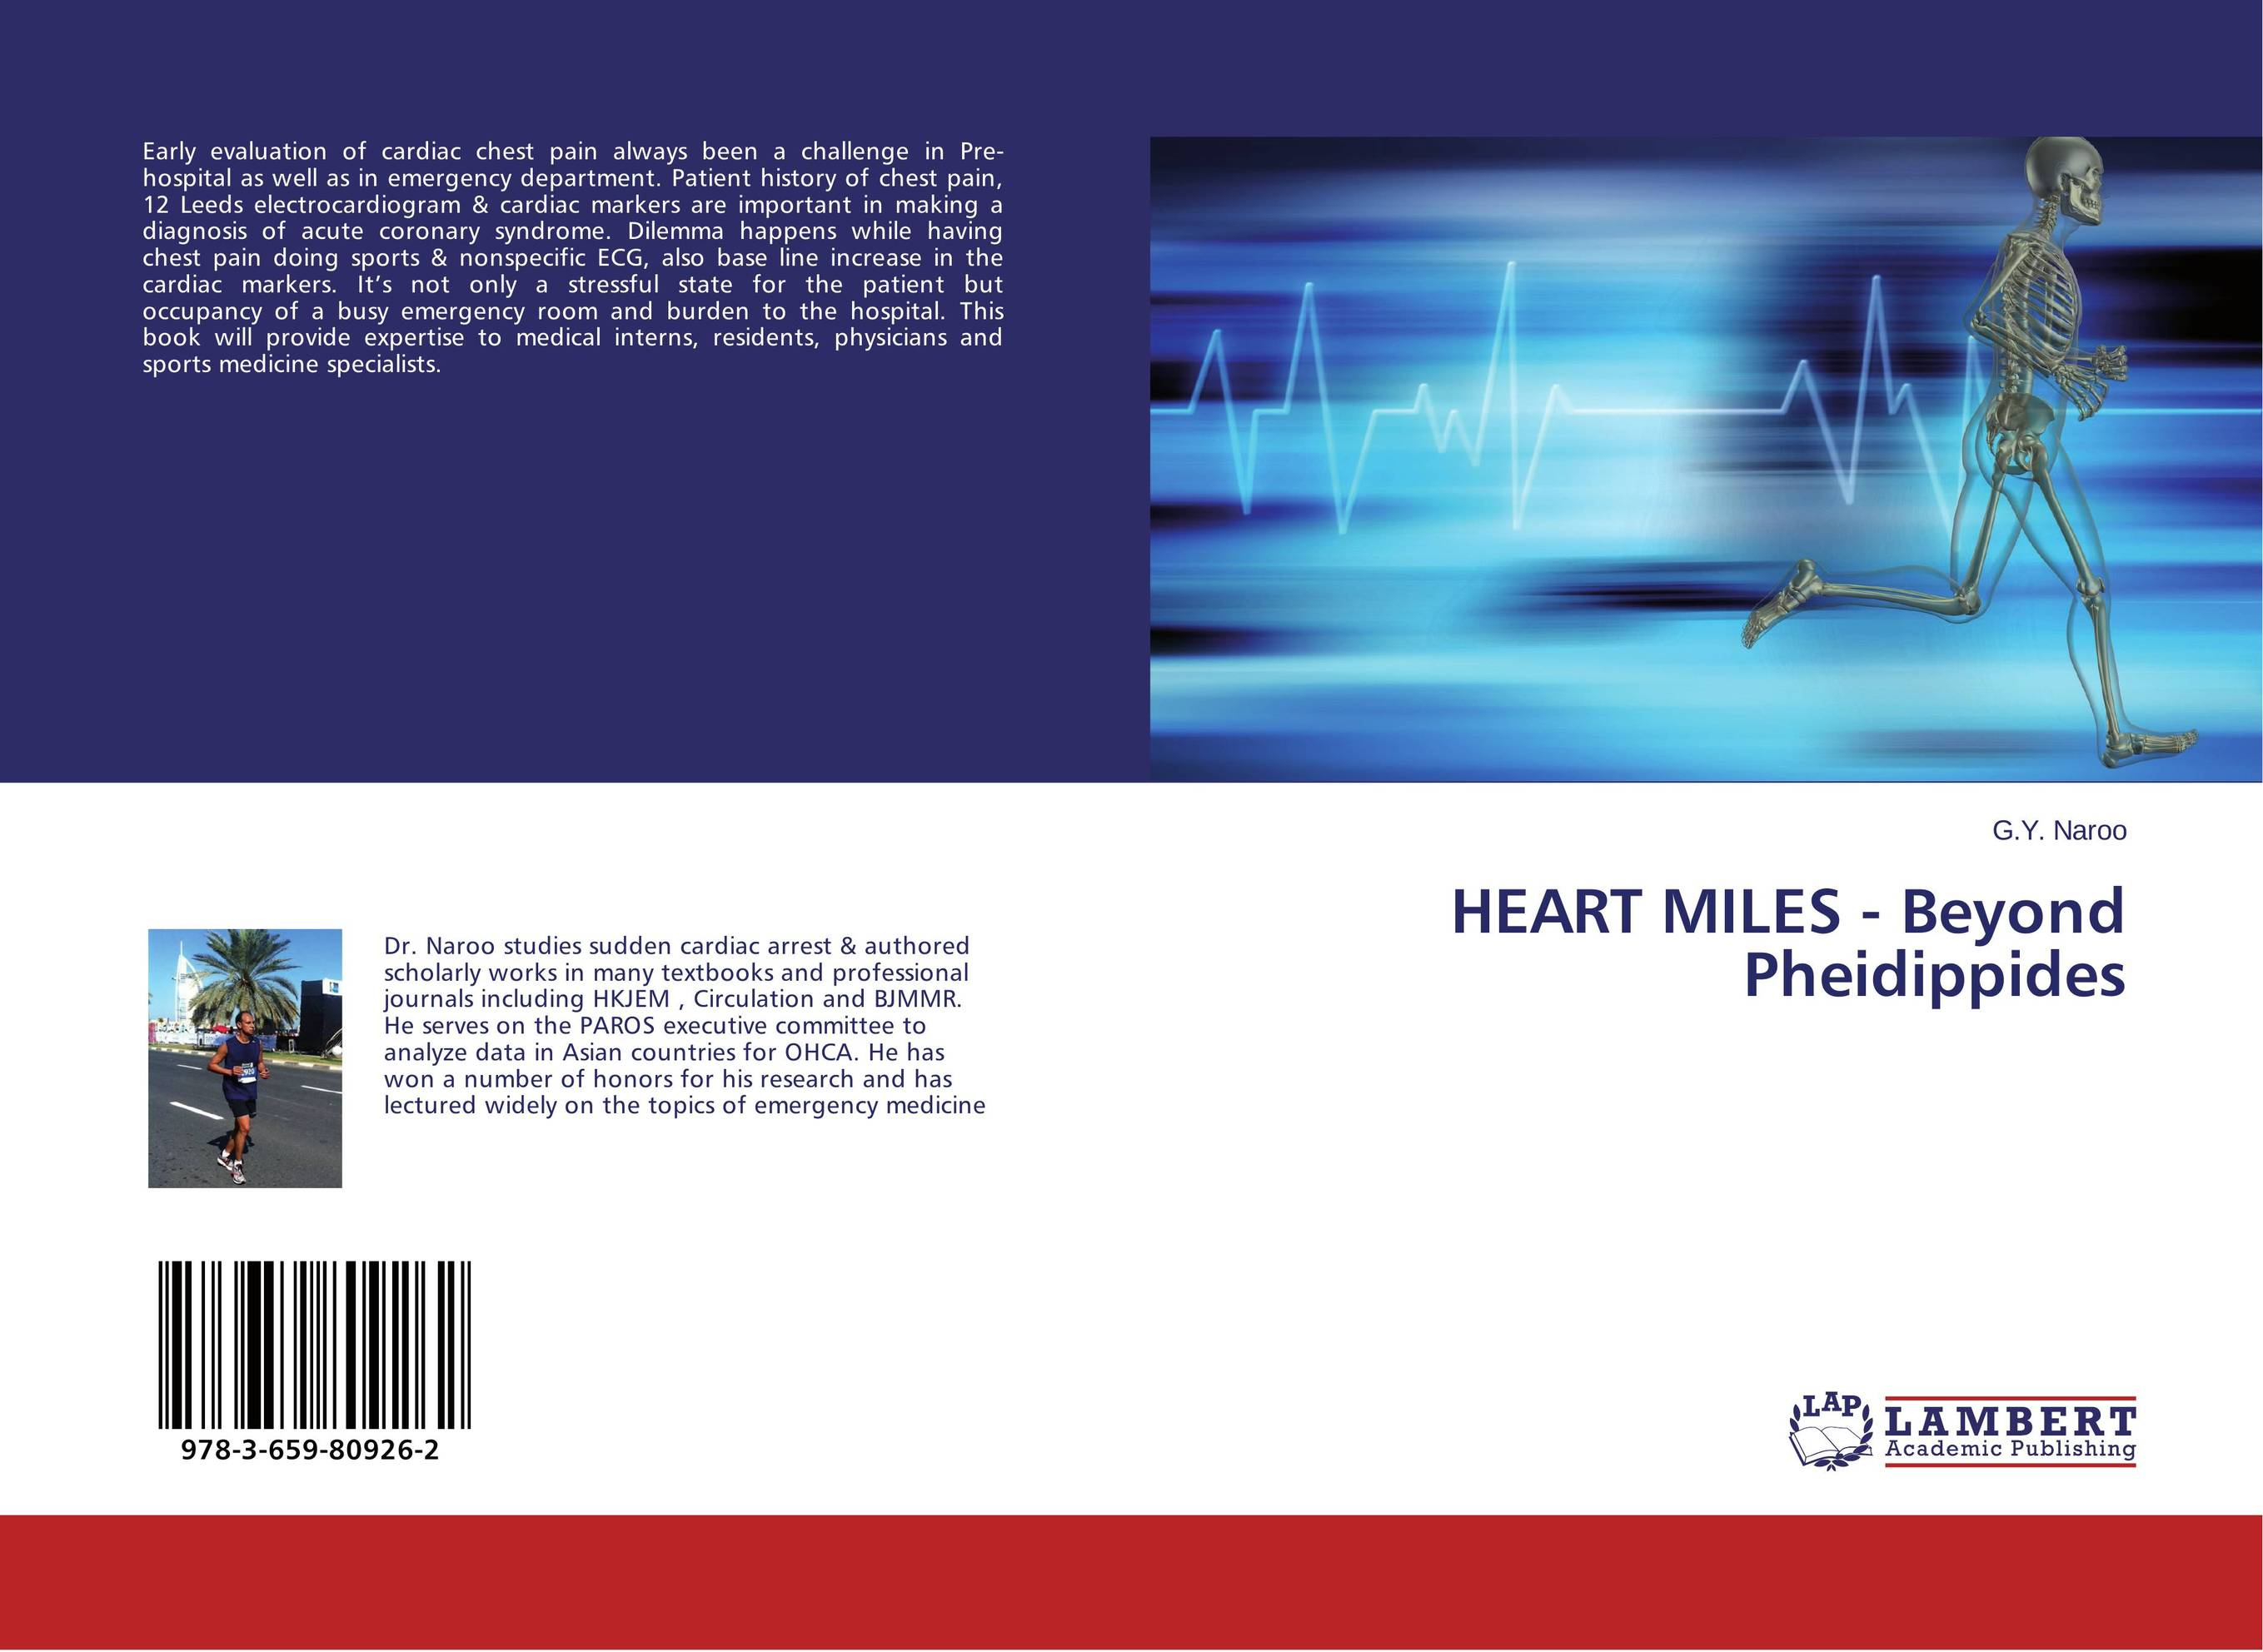 HEART MILES - Beyond Pheidippides 50pairs lot emergency supplies ecg defibrillation electrode patch prompt aed defibrillator trainer accessories not for clinical